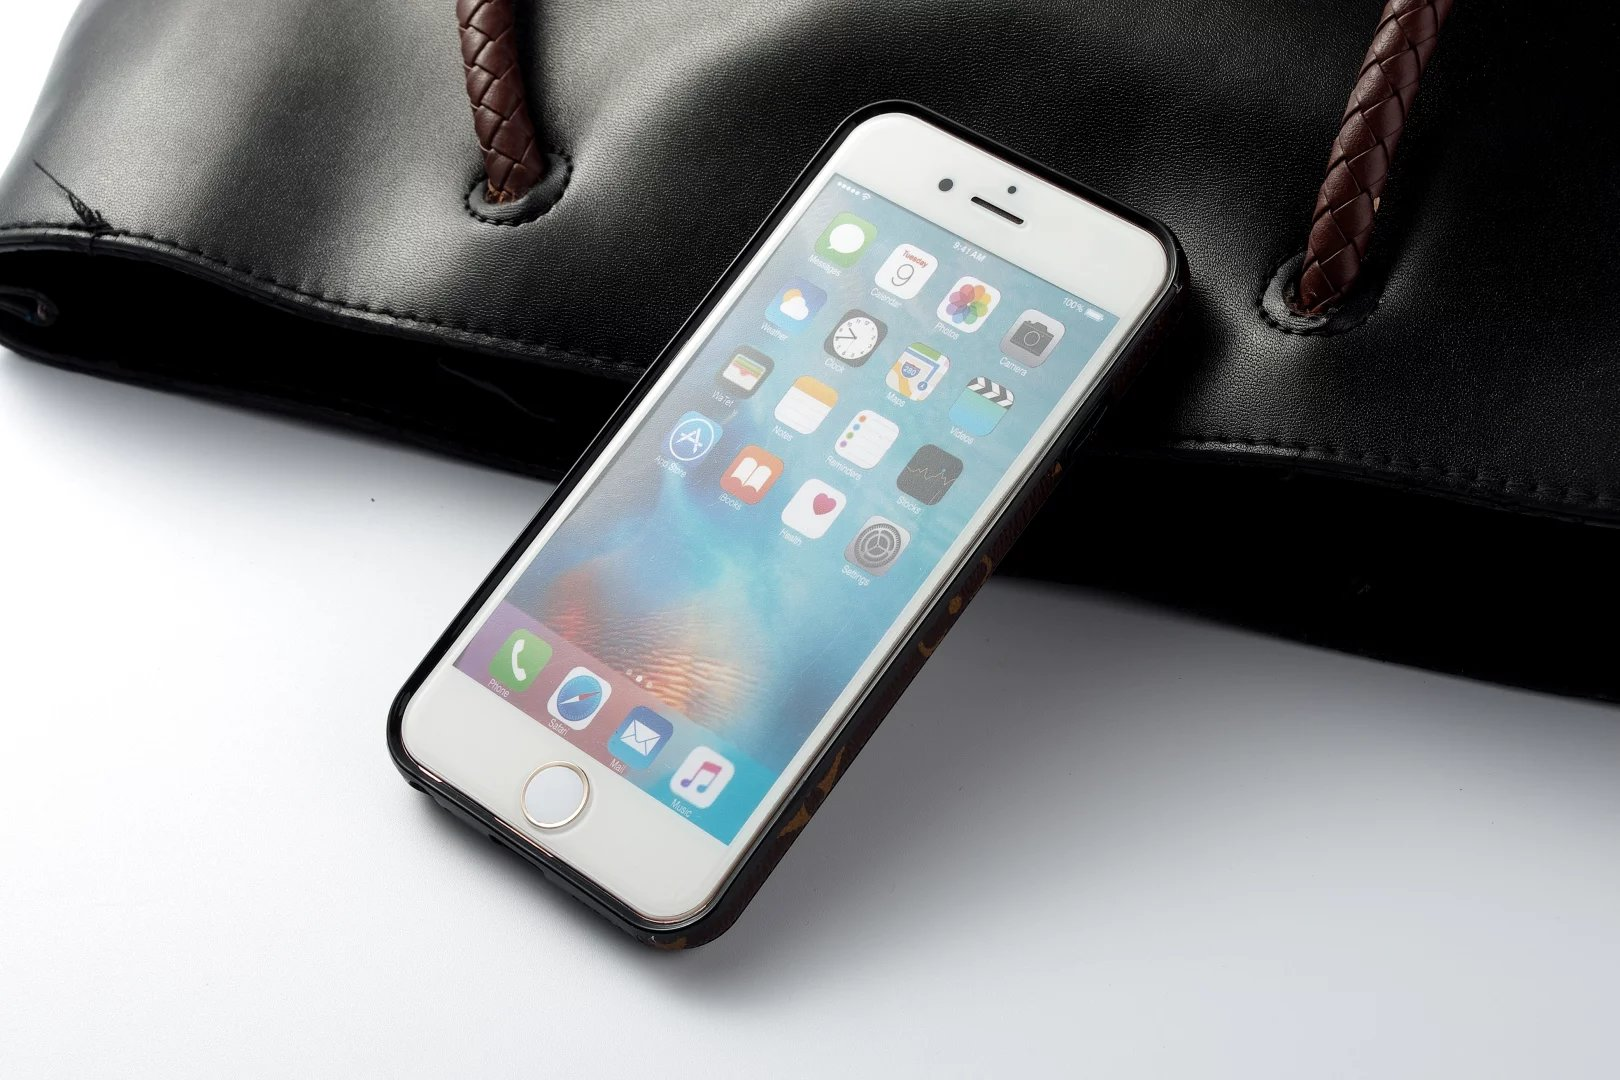 iphone hülle drucken iphone hülle selber machen Gucci iphone 8 Plus hüllen iphone 8 Plus smartphone ca8 Plus bedrucken rote iphone 8 Plus hülle ca8 Plus 8 Pluslbst gestalten freitag iphone hülle iphone 8 Plus hutzhülle outdoor